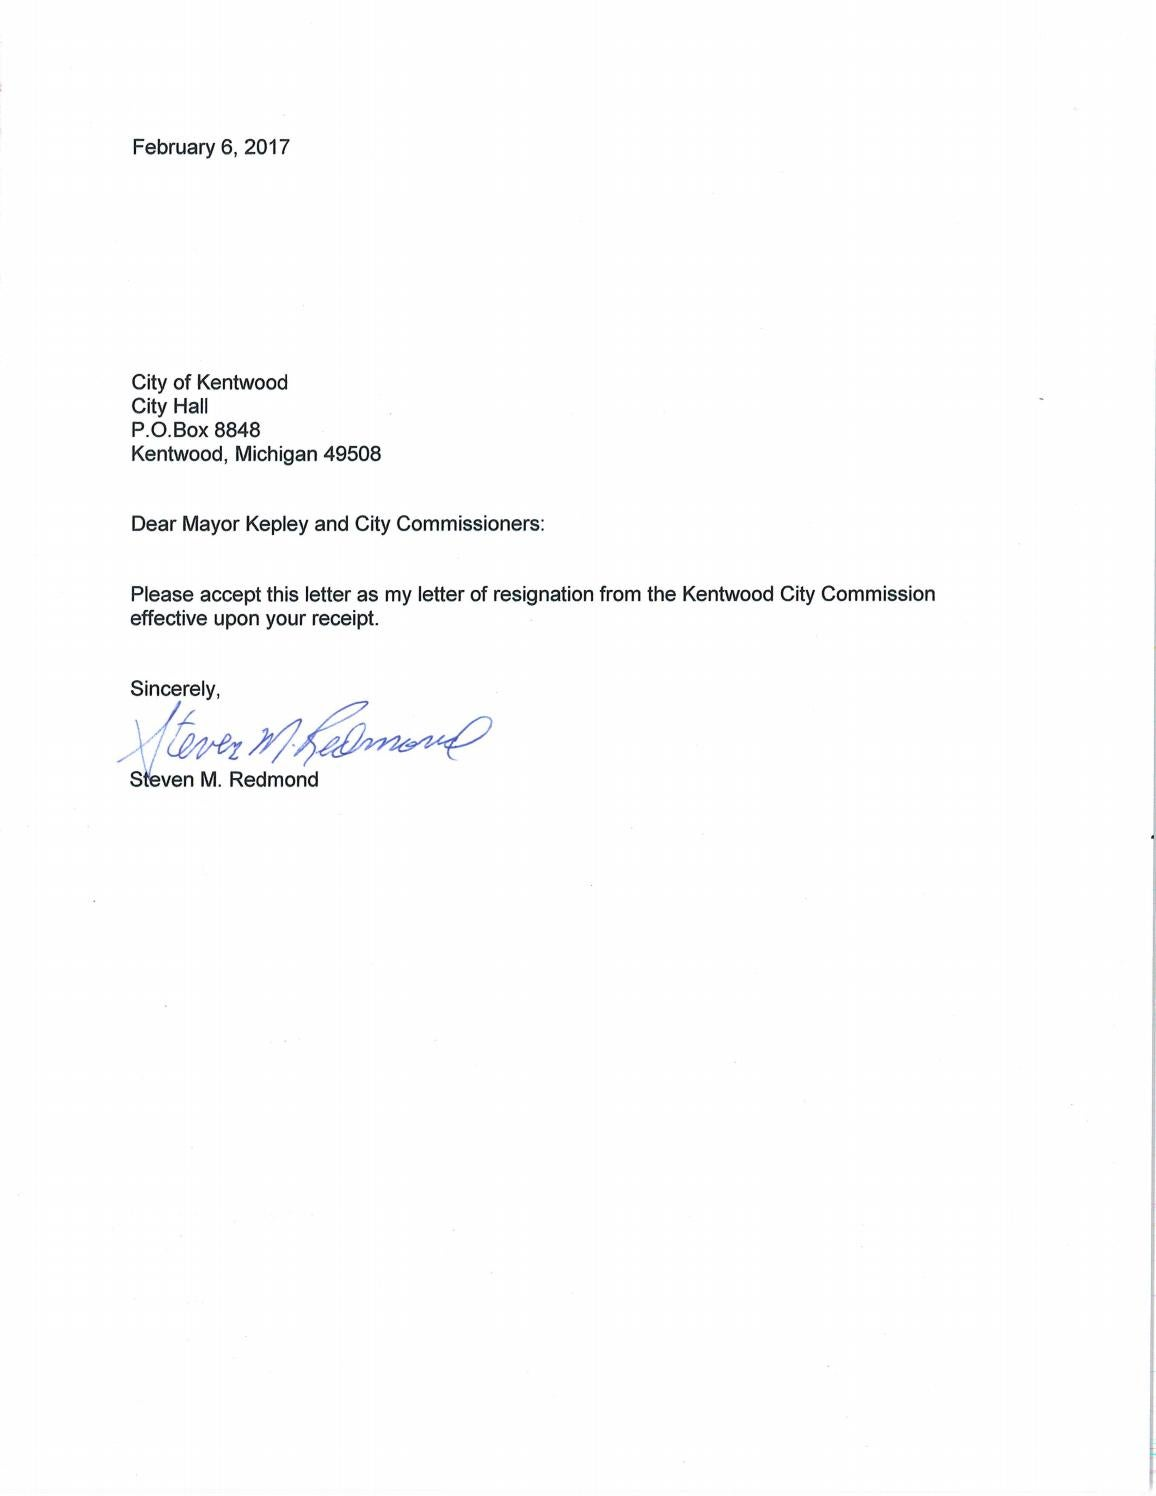 kentwood commissioner accused of making threatening call to resign redmond letter 1 month ago amybiolchini7